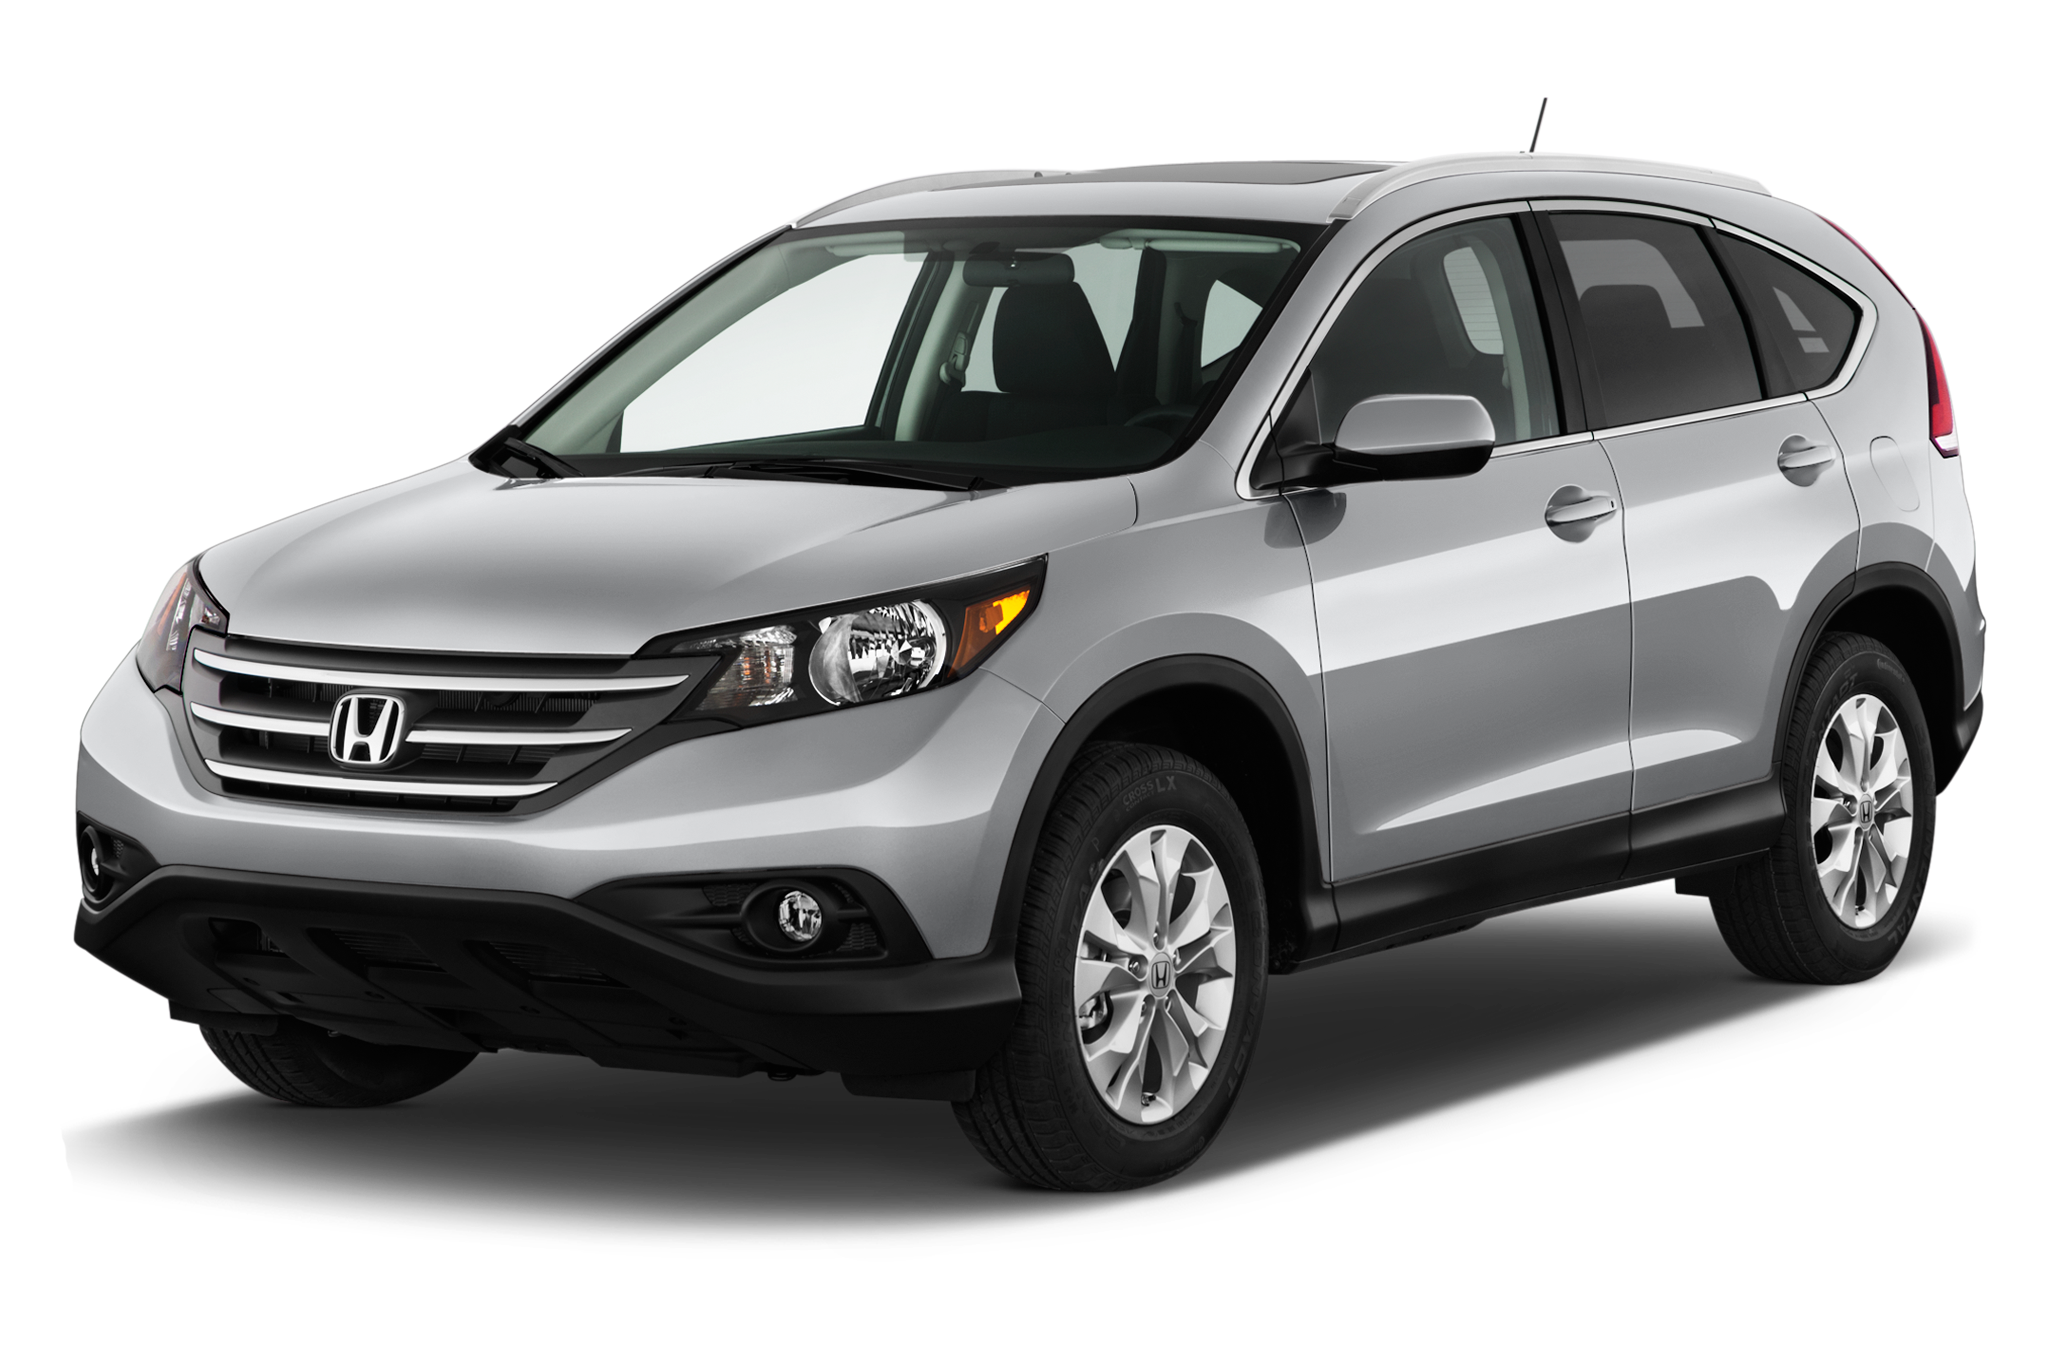 Difference between honda crv exl and autos post for Honda crv exl with navigation